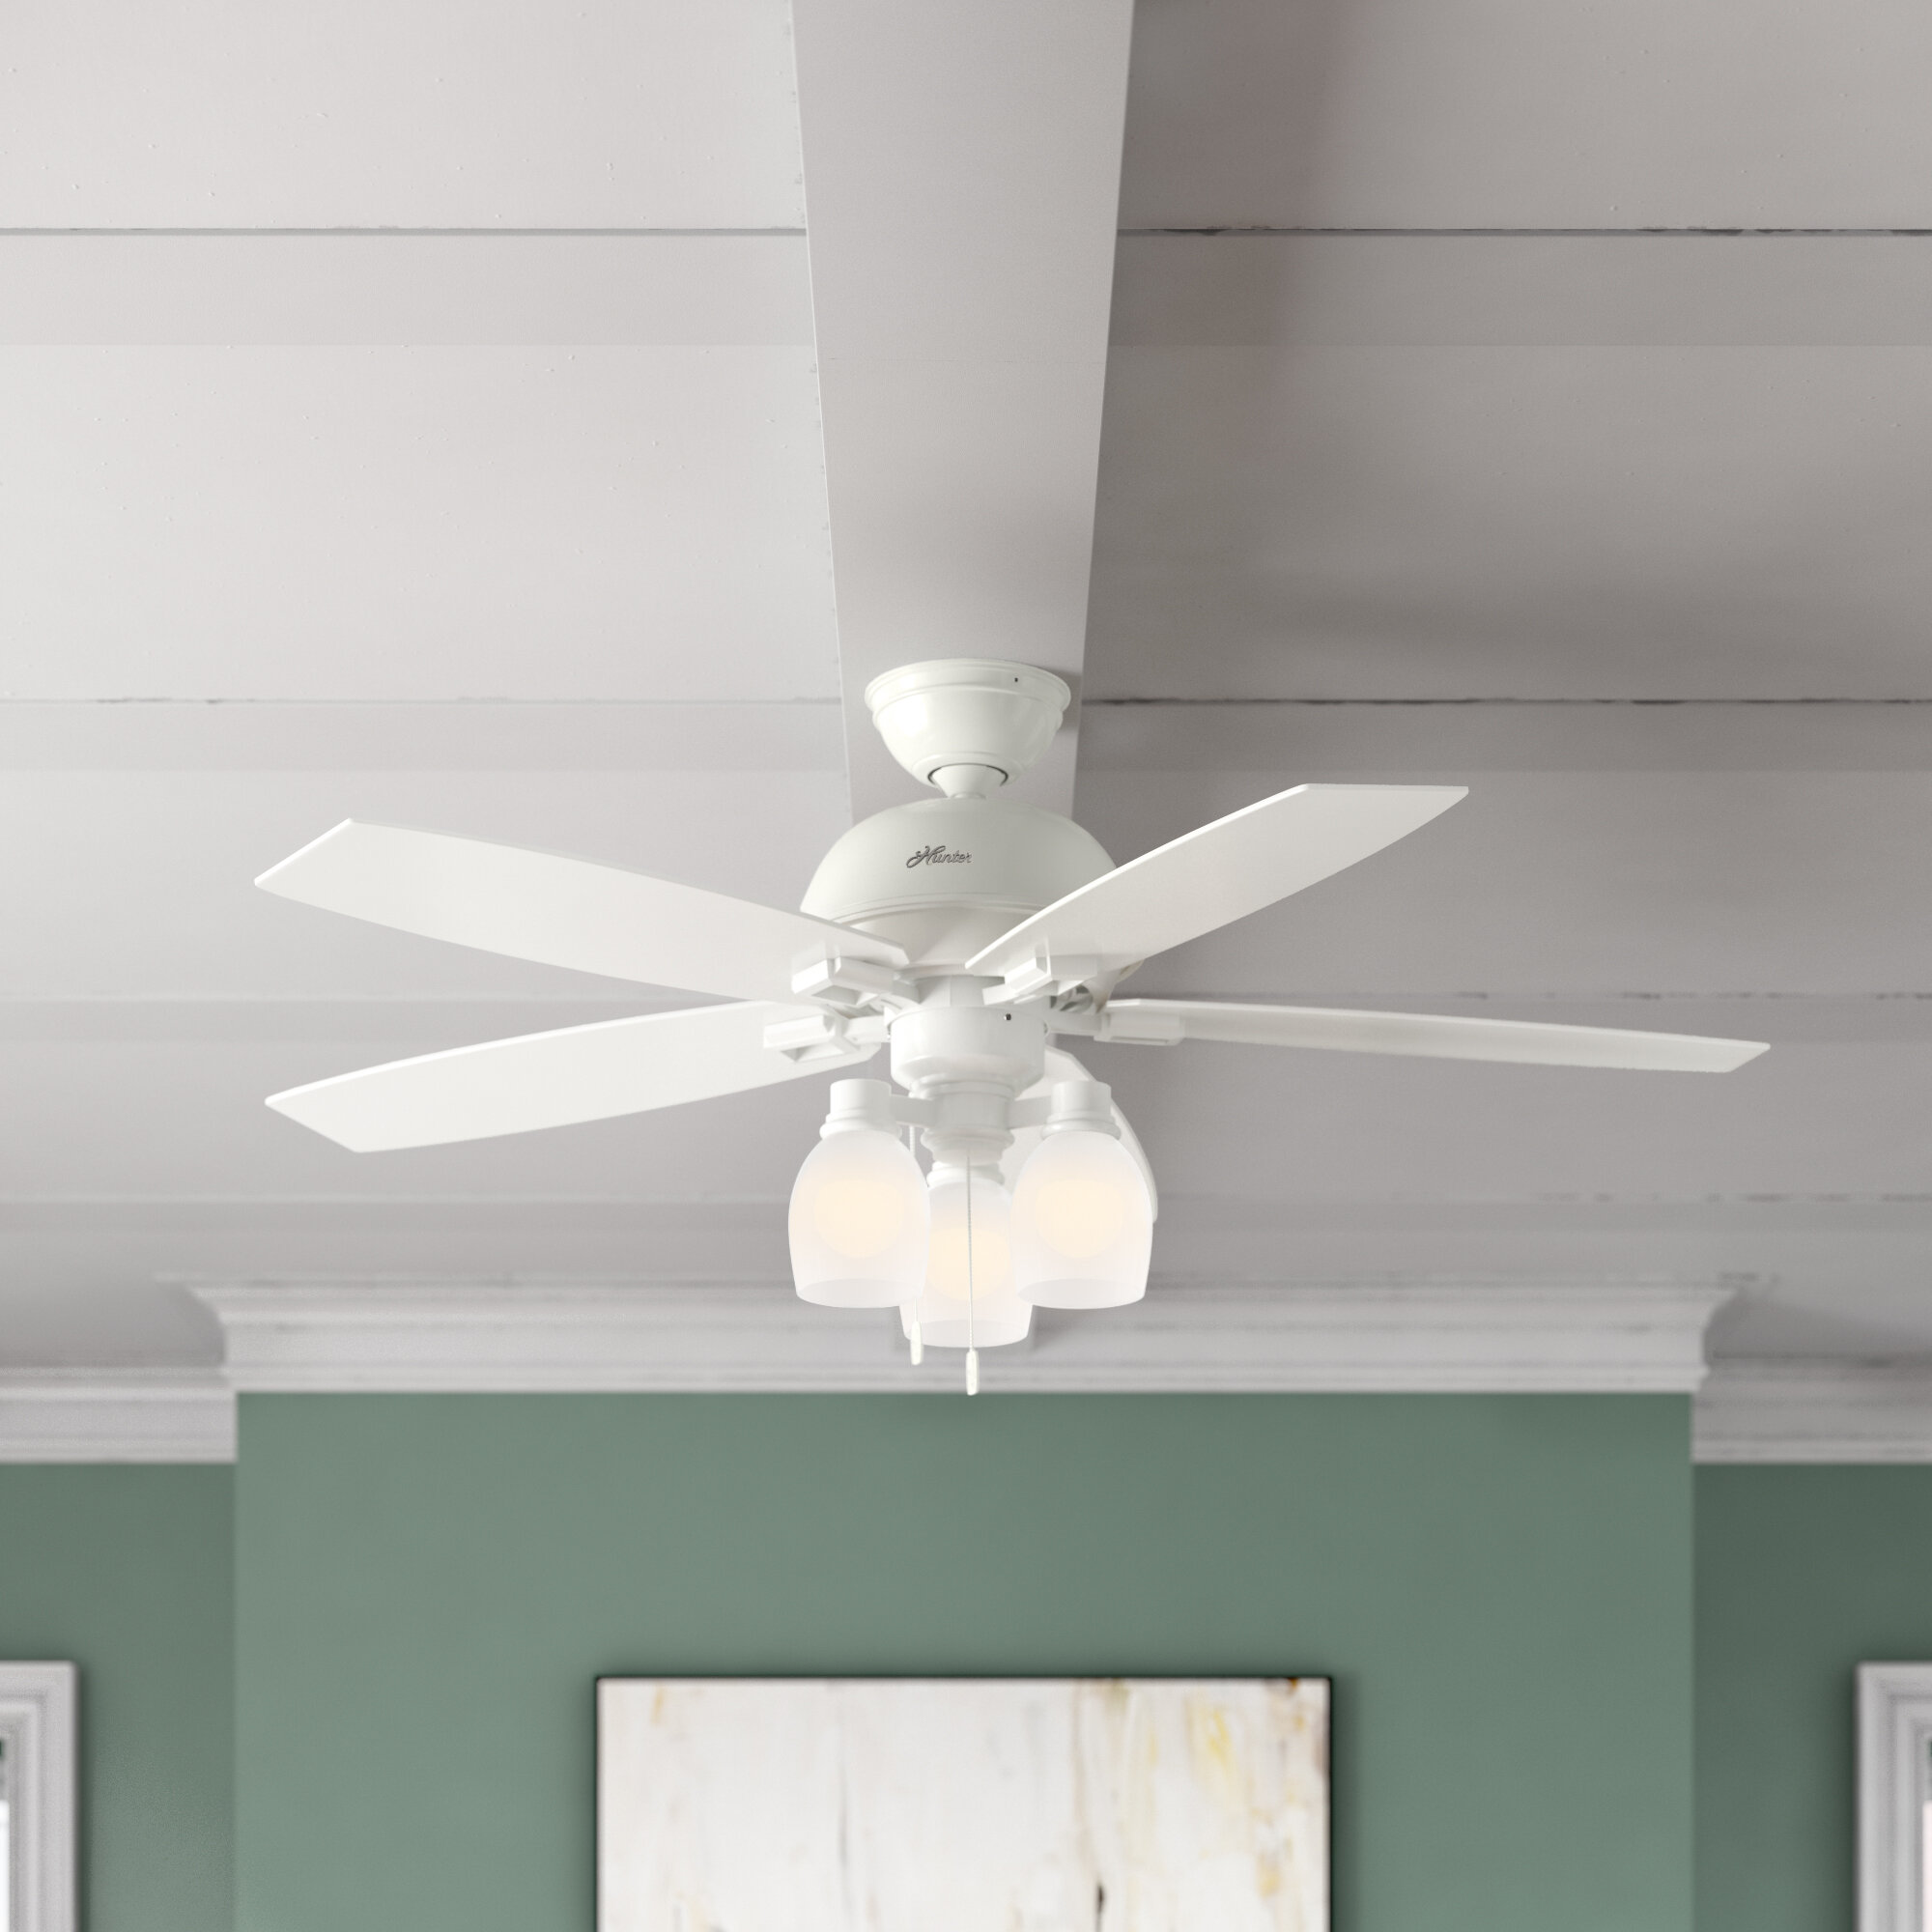 52 Donegan 5 Blade Standard Ceiling Fan With Pull Chain And Light Kit Included Reviews Joss Main